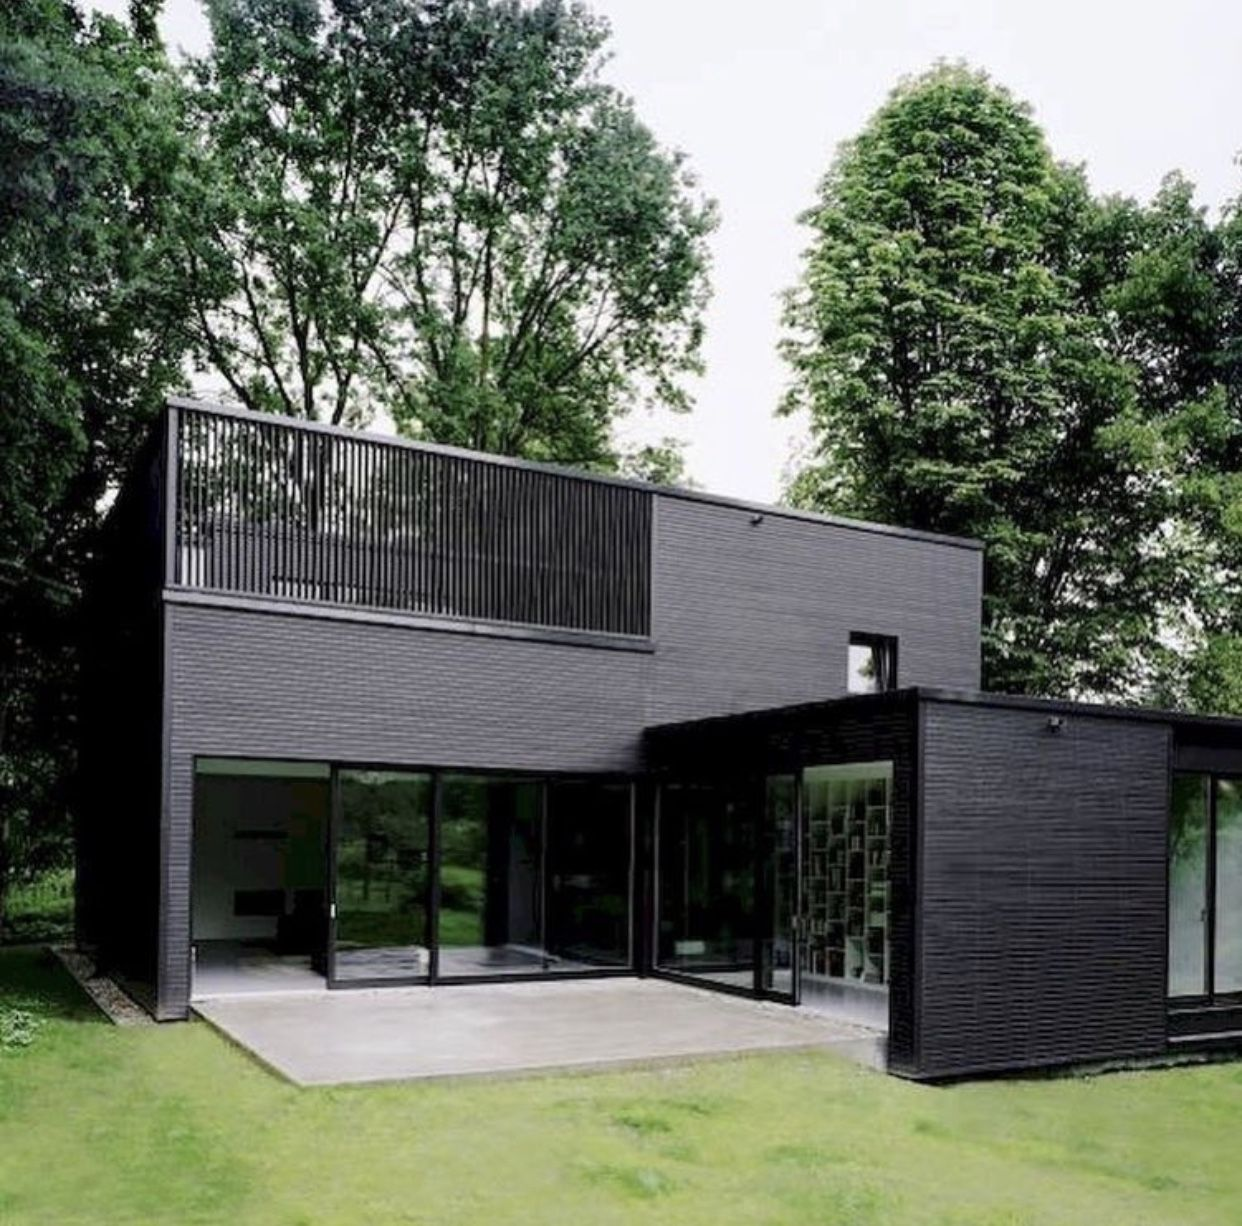 440 New Home Inspiration Ideas House Design Architecture Container House